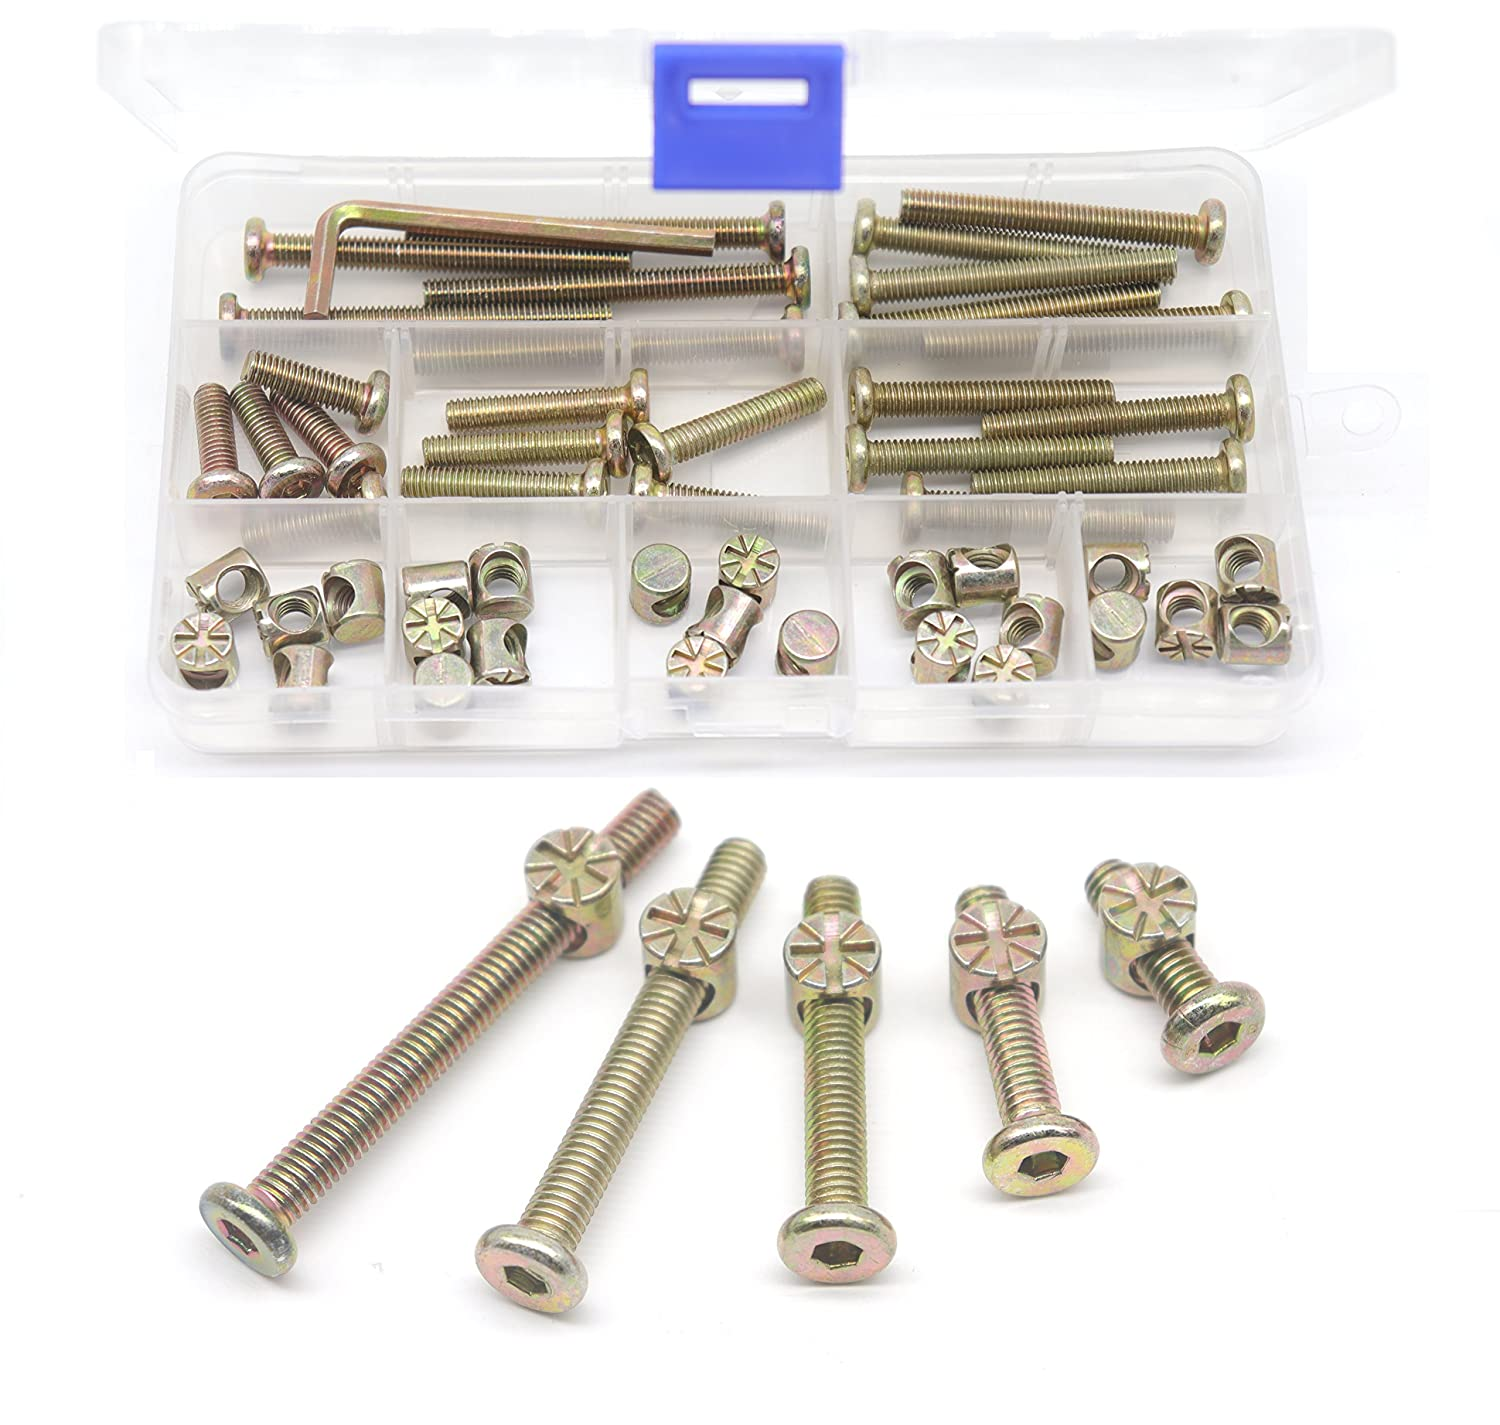 M6 Baby Crib Hardware Replacement Kit Cseao 50pcs Socket Cap Bolts Barrel Nuts Assortment Kit For Bunk Bed Furniture Chairs M6x20mm 30mm 40mm